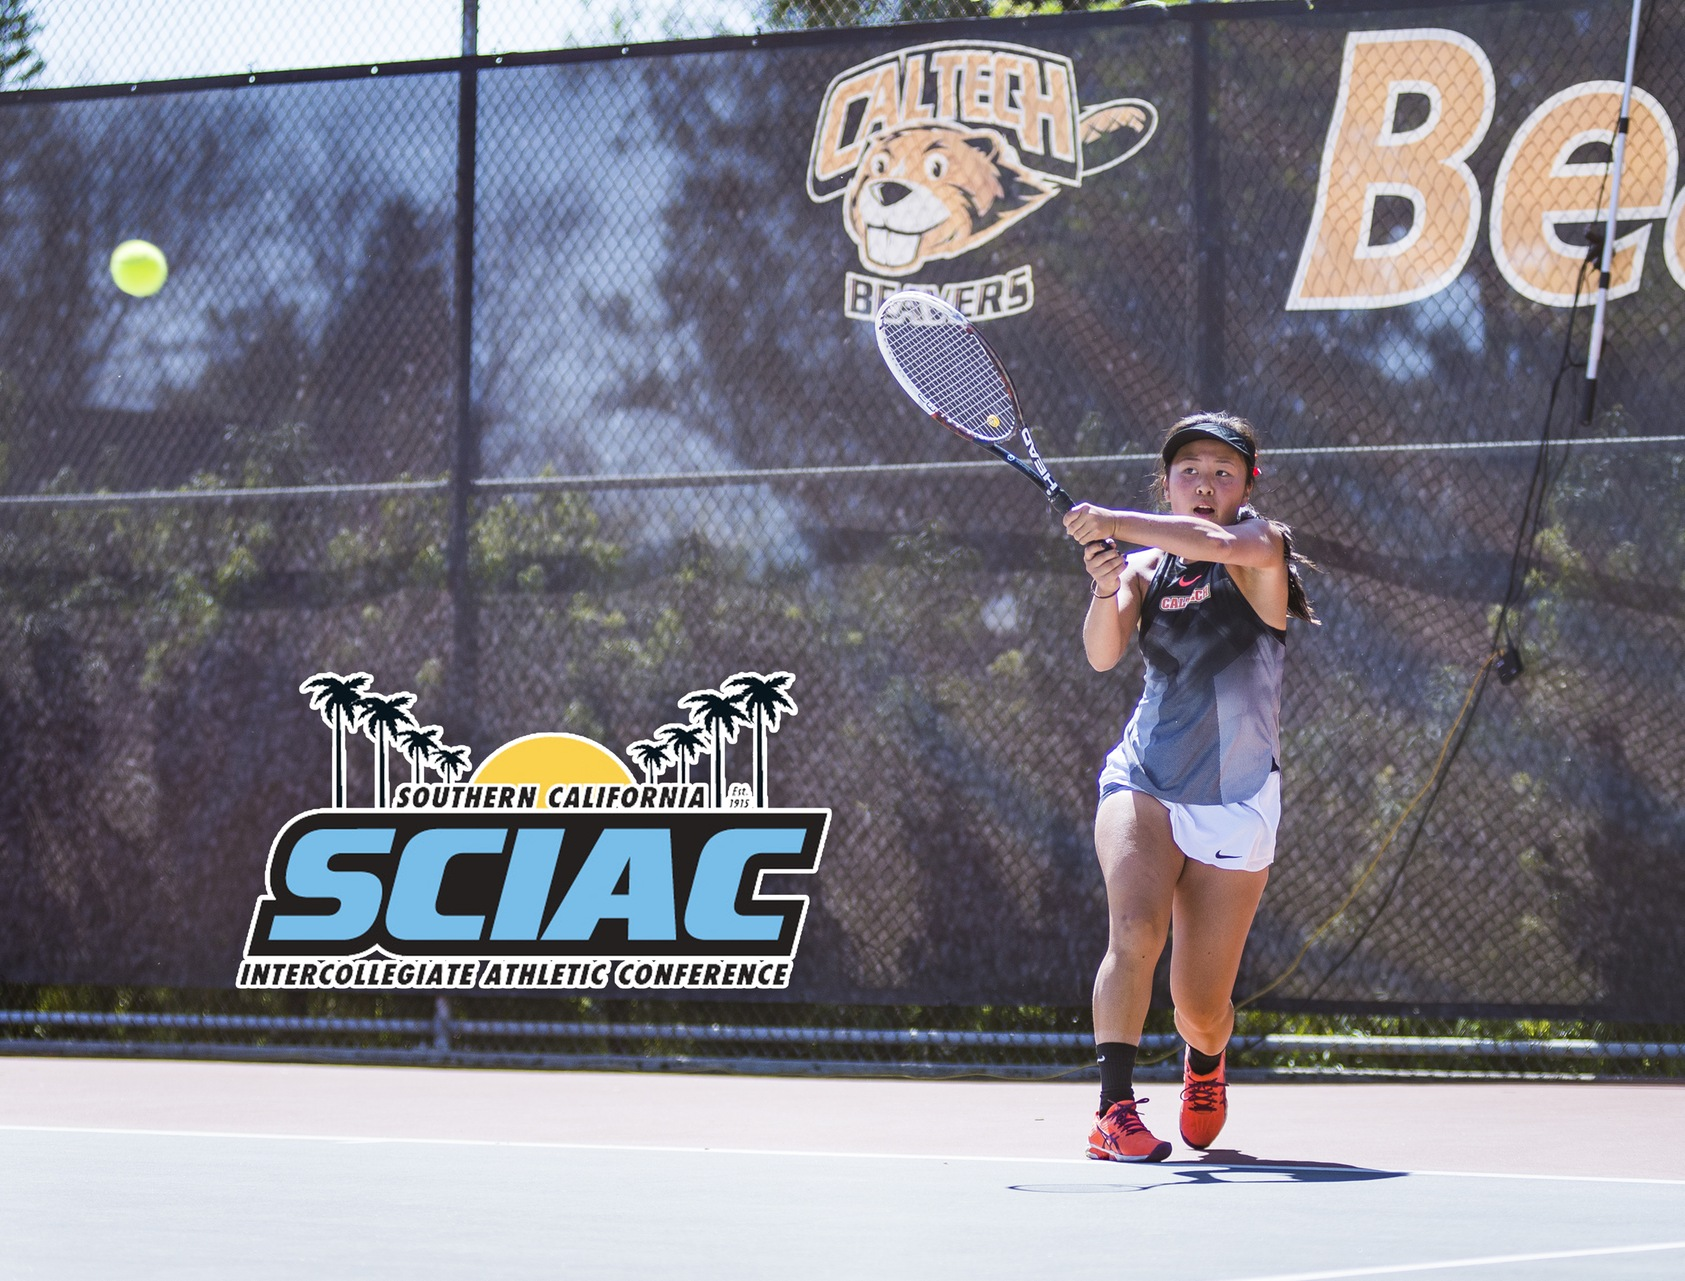 Moryiama Named to First-Team All-SCIAC, Reisler to Second